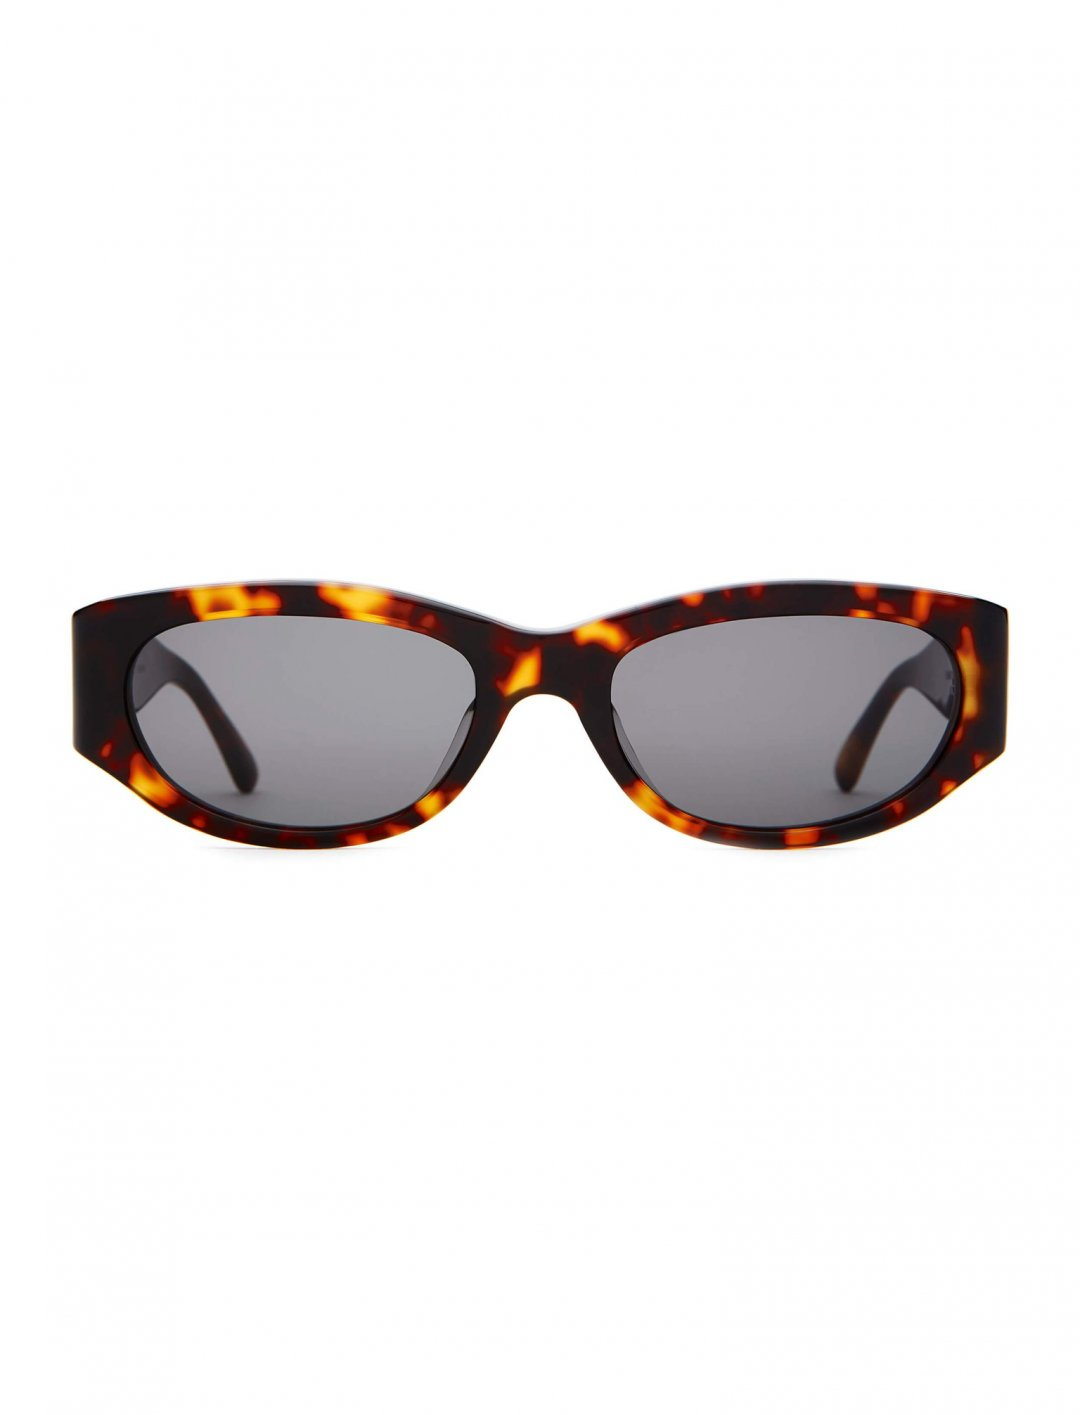 "The Funk Punk Sunglasses {""id"":16,""product_section_id"":1,""name"":""Accessories"",""order"":15} Crap Eyewear"